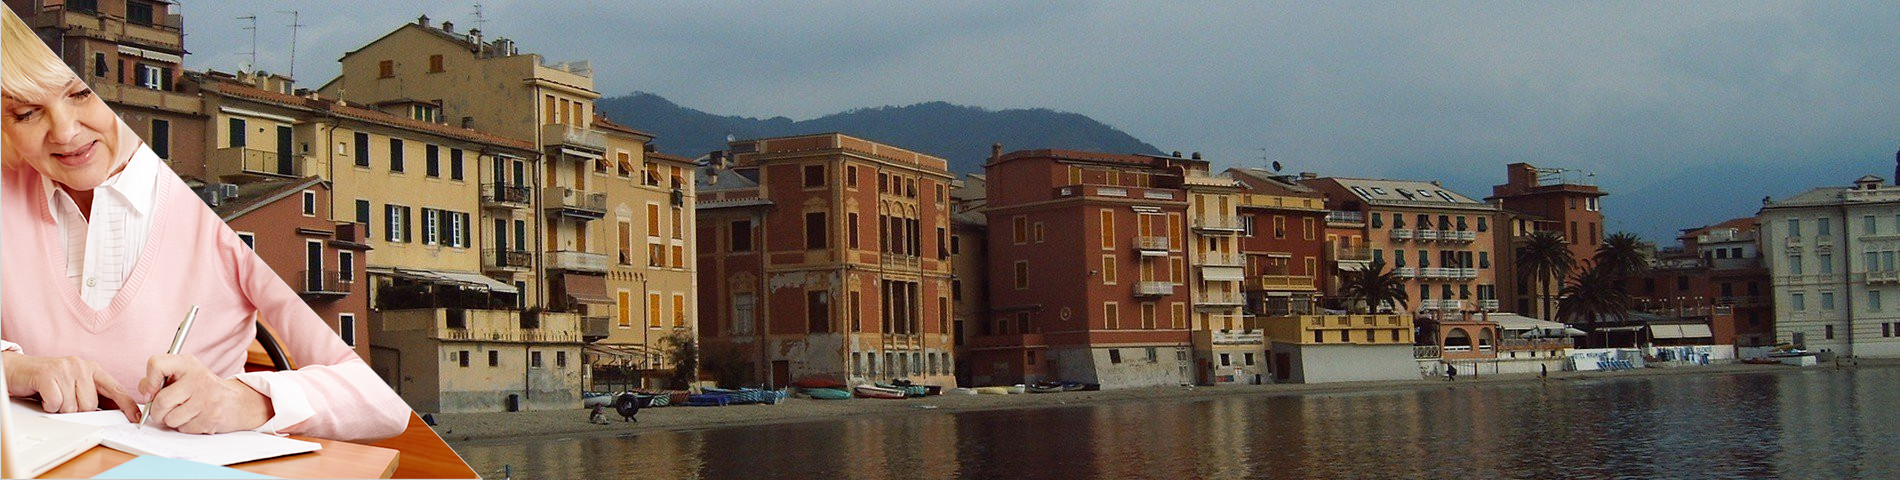 Sestri Levante - Senioren (50 plus)